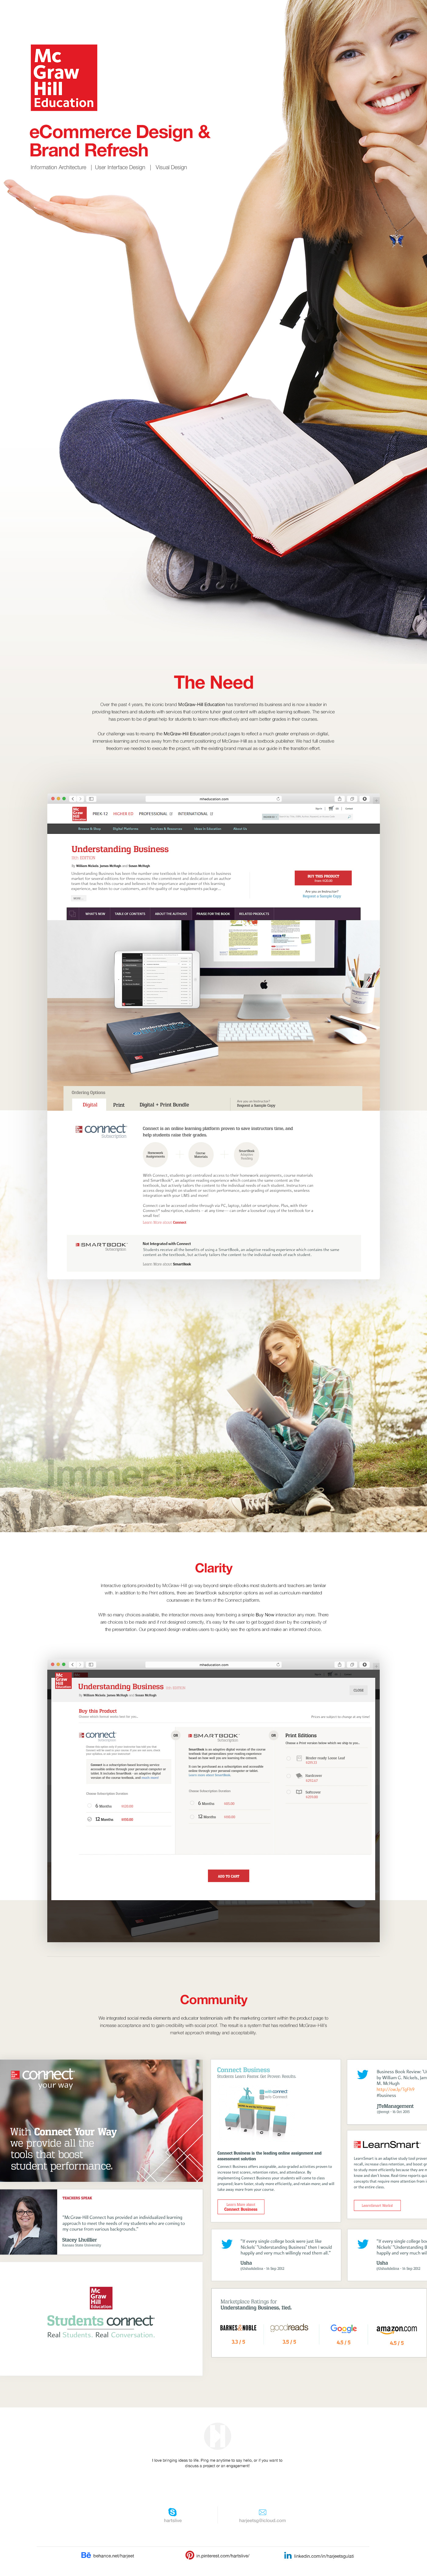 McGraw-Hill eCommerce design UI/UX Product PAge Design buy now eCommerce Web Design